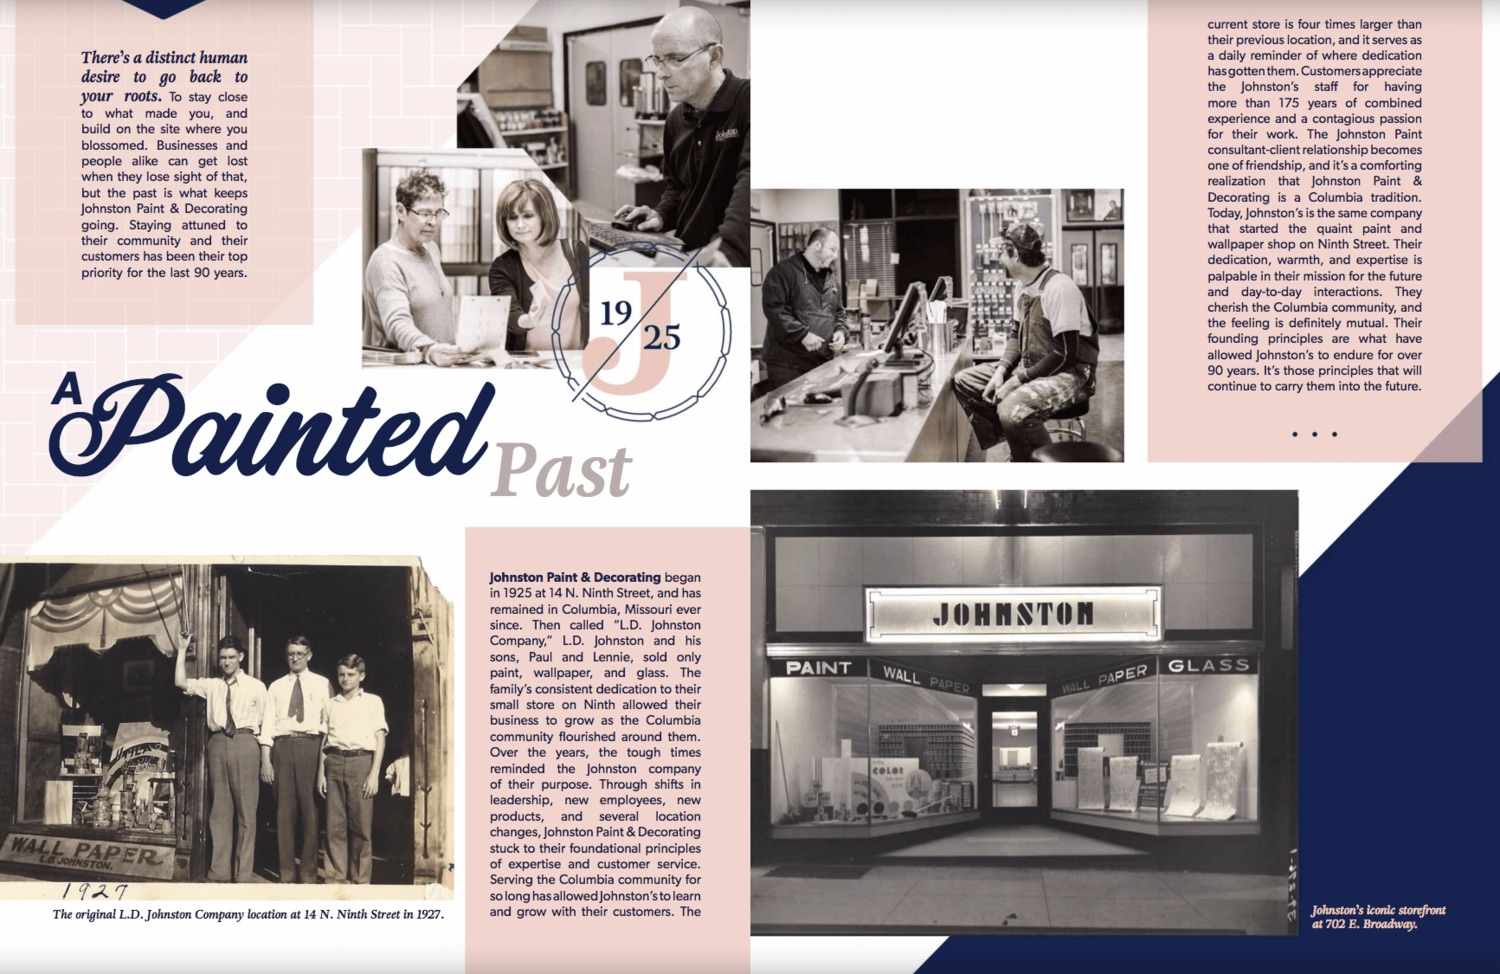 Johnston Paint & Decorating was recently featured in Gallon Magazine